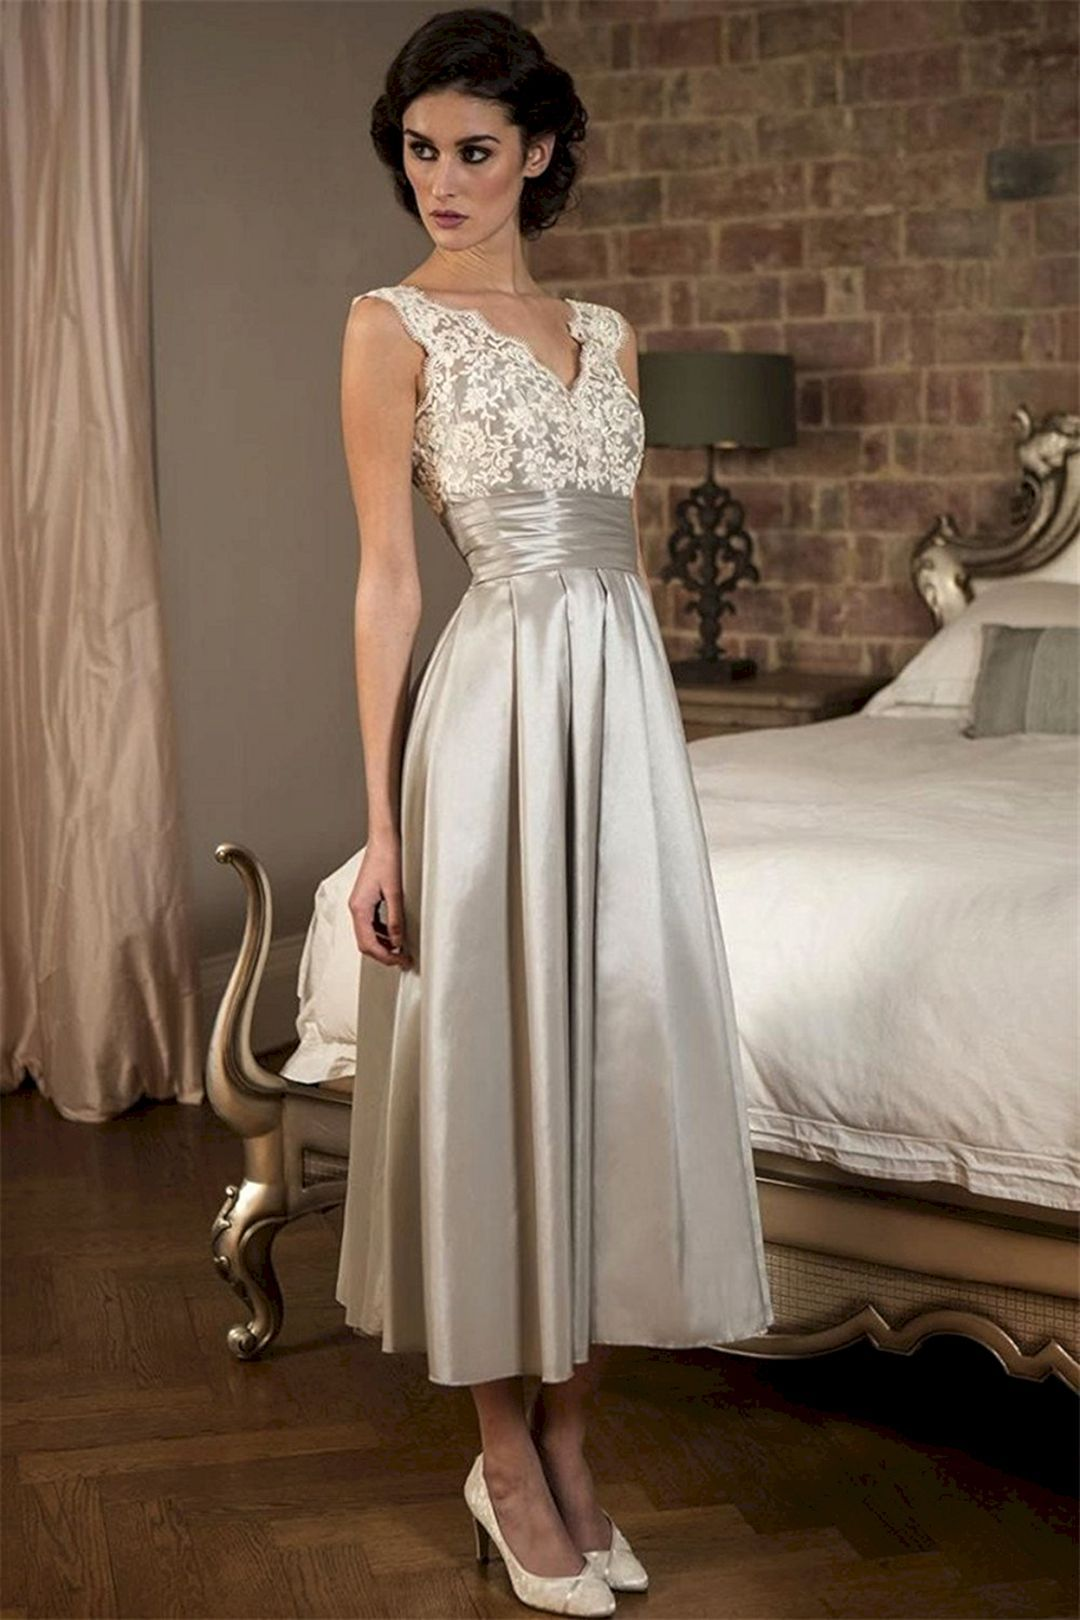 Best Mother of the Bride and Groom Dresses Ideas  mom dress for